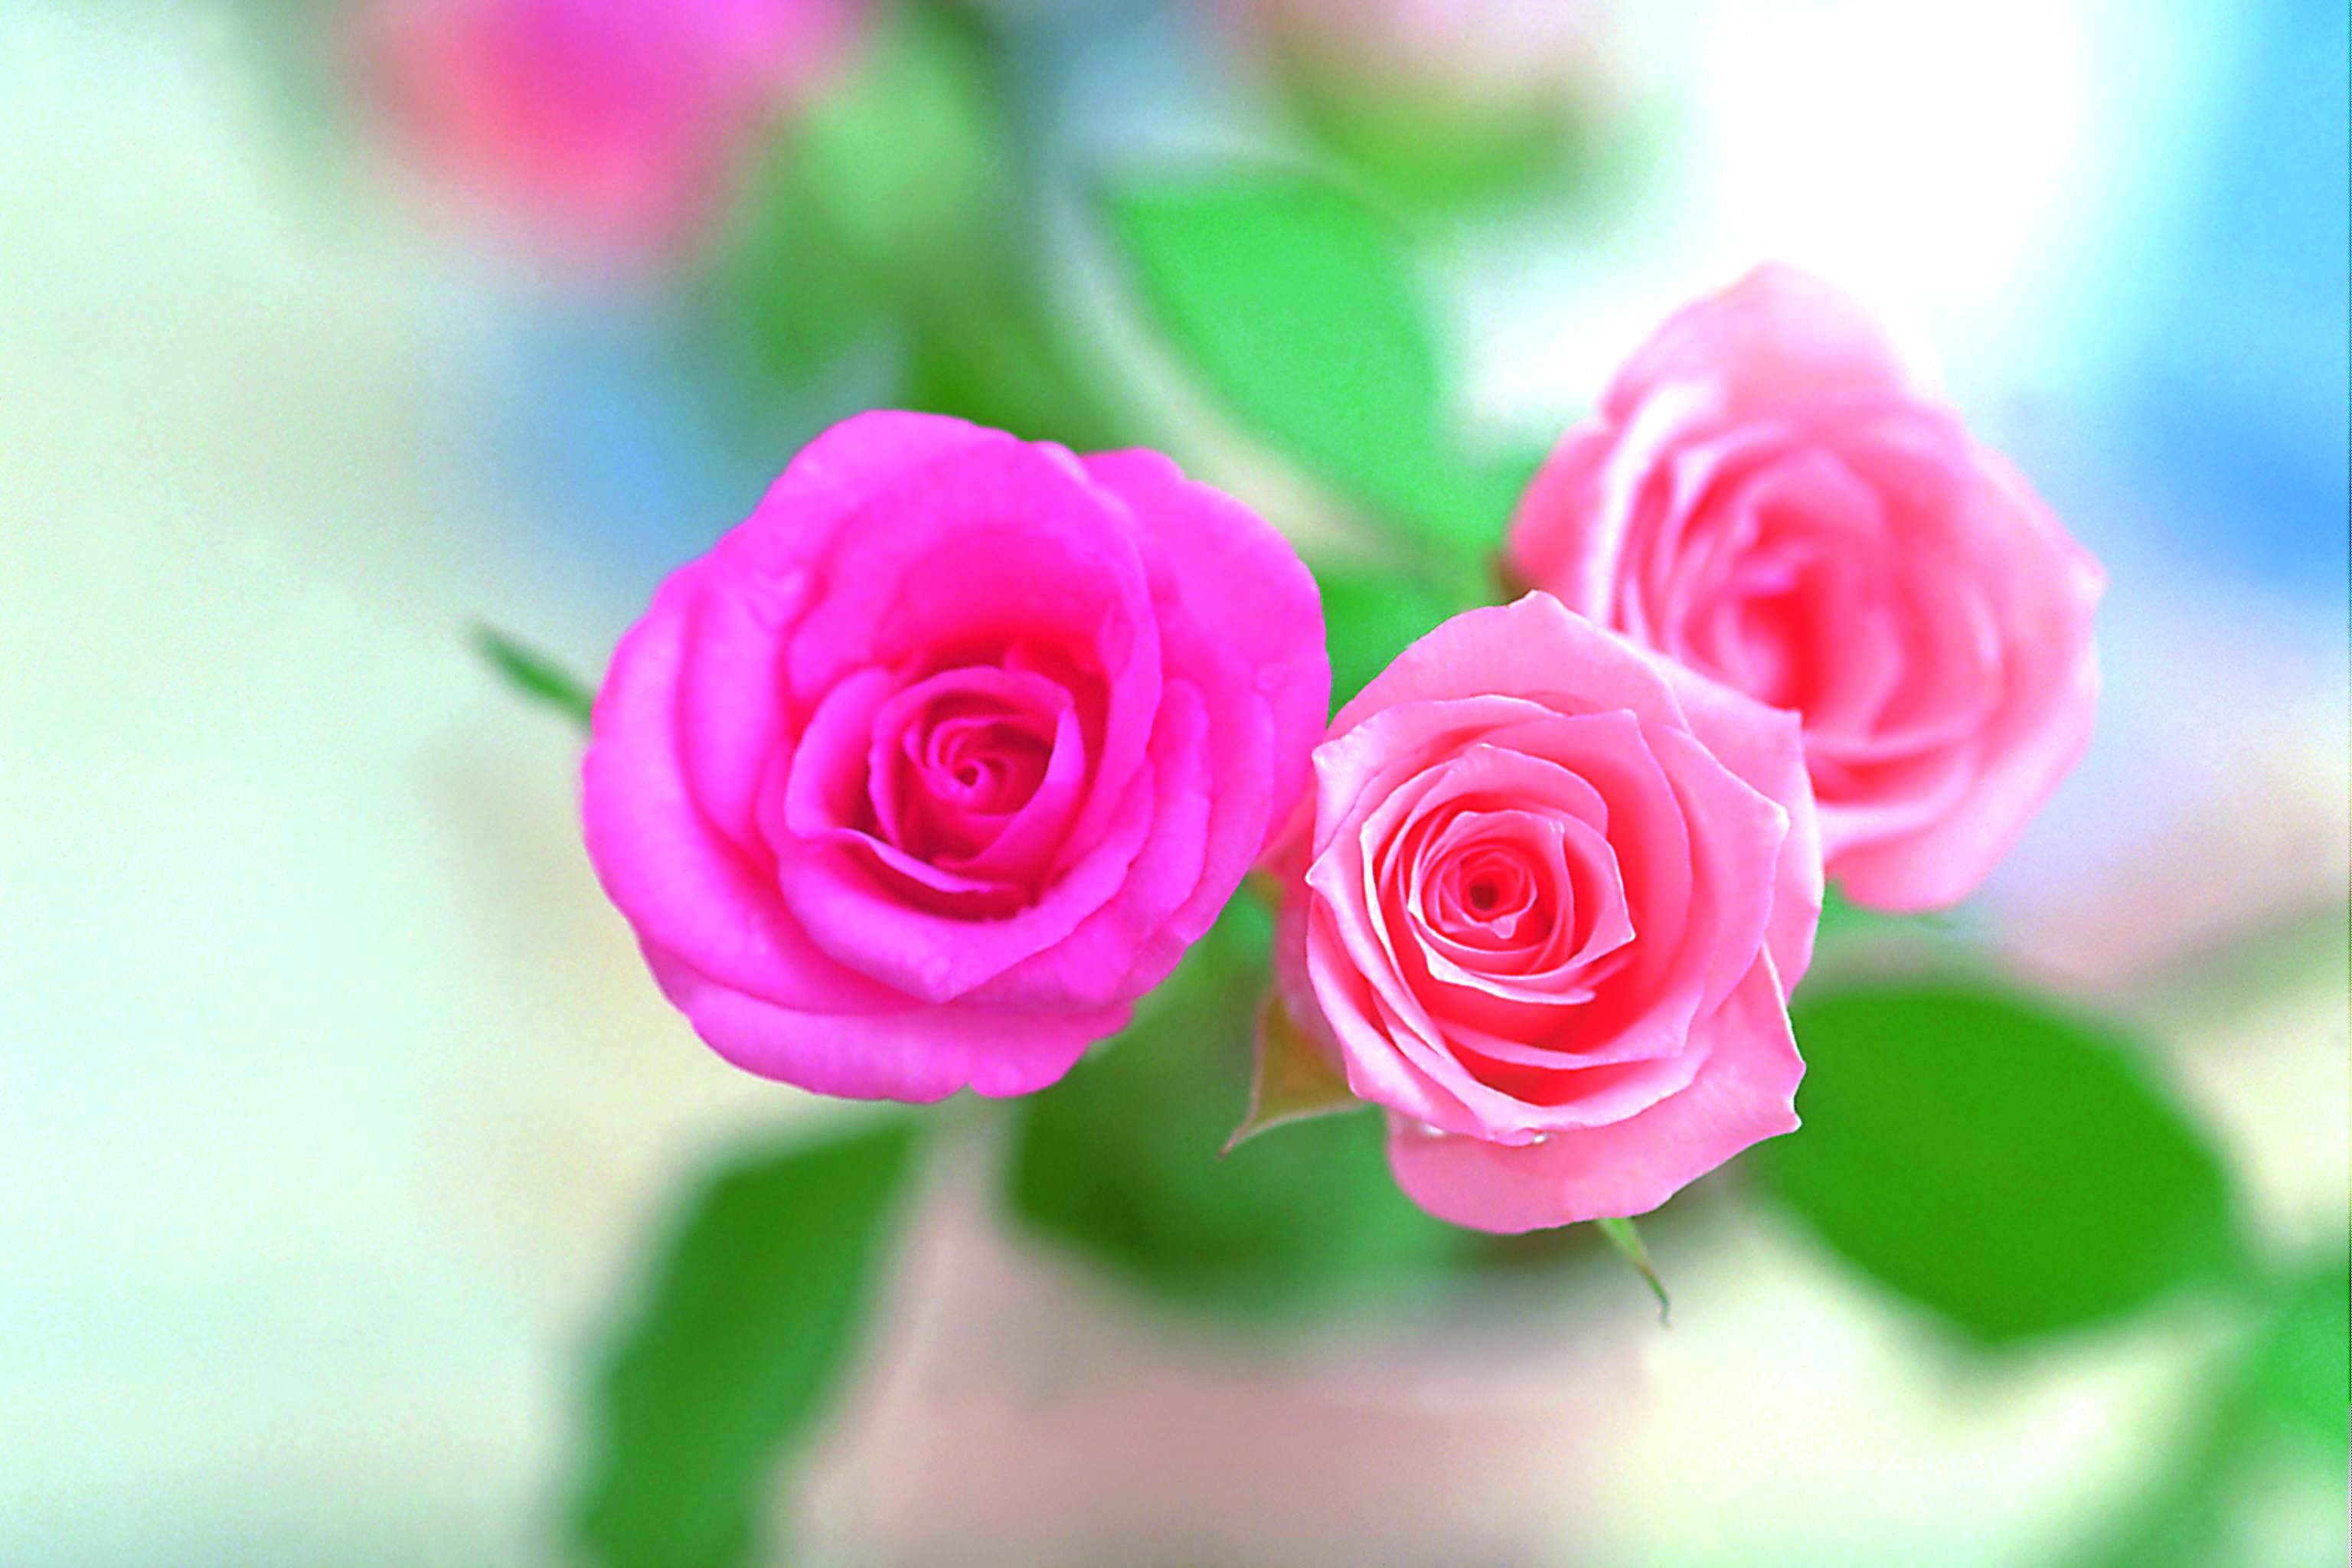 Rose flower wall paper juvecenitdelacabrera pink rose flower wallpapers wallpaper cave mightylinksfo